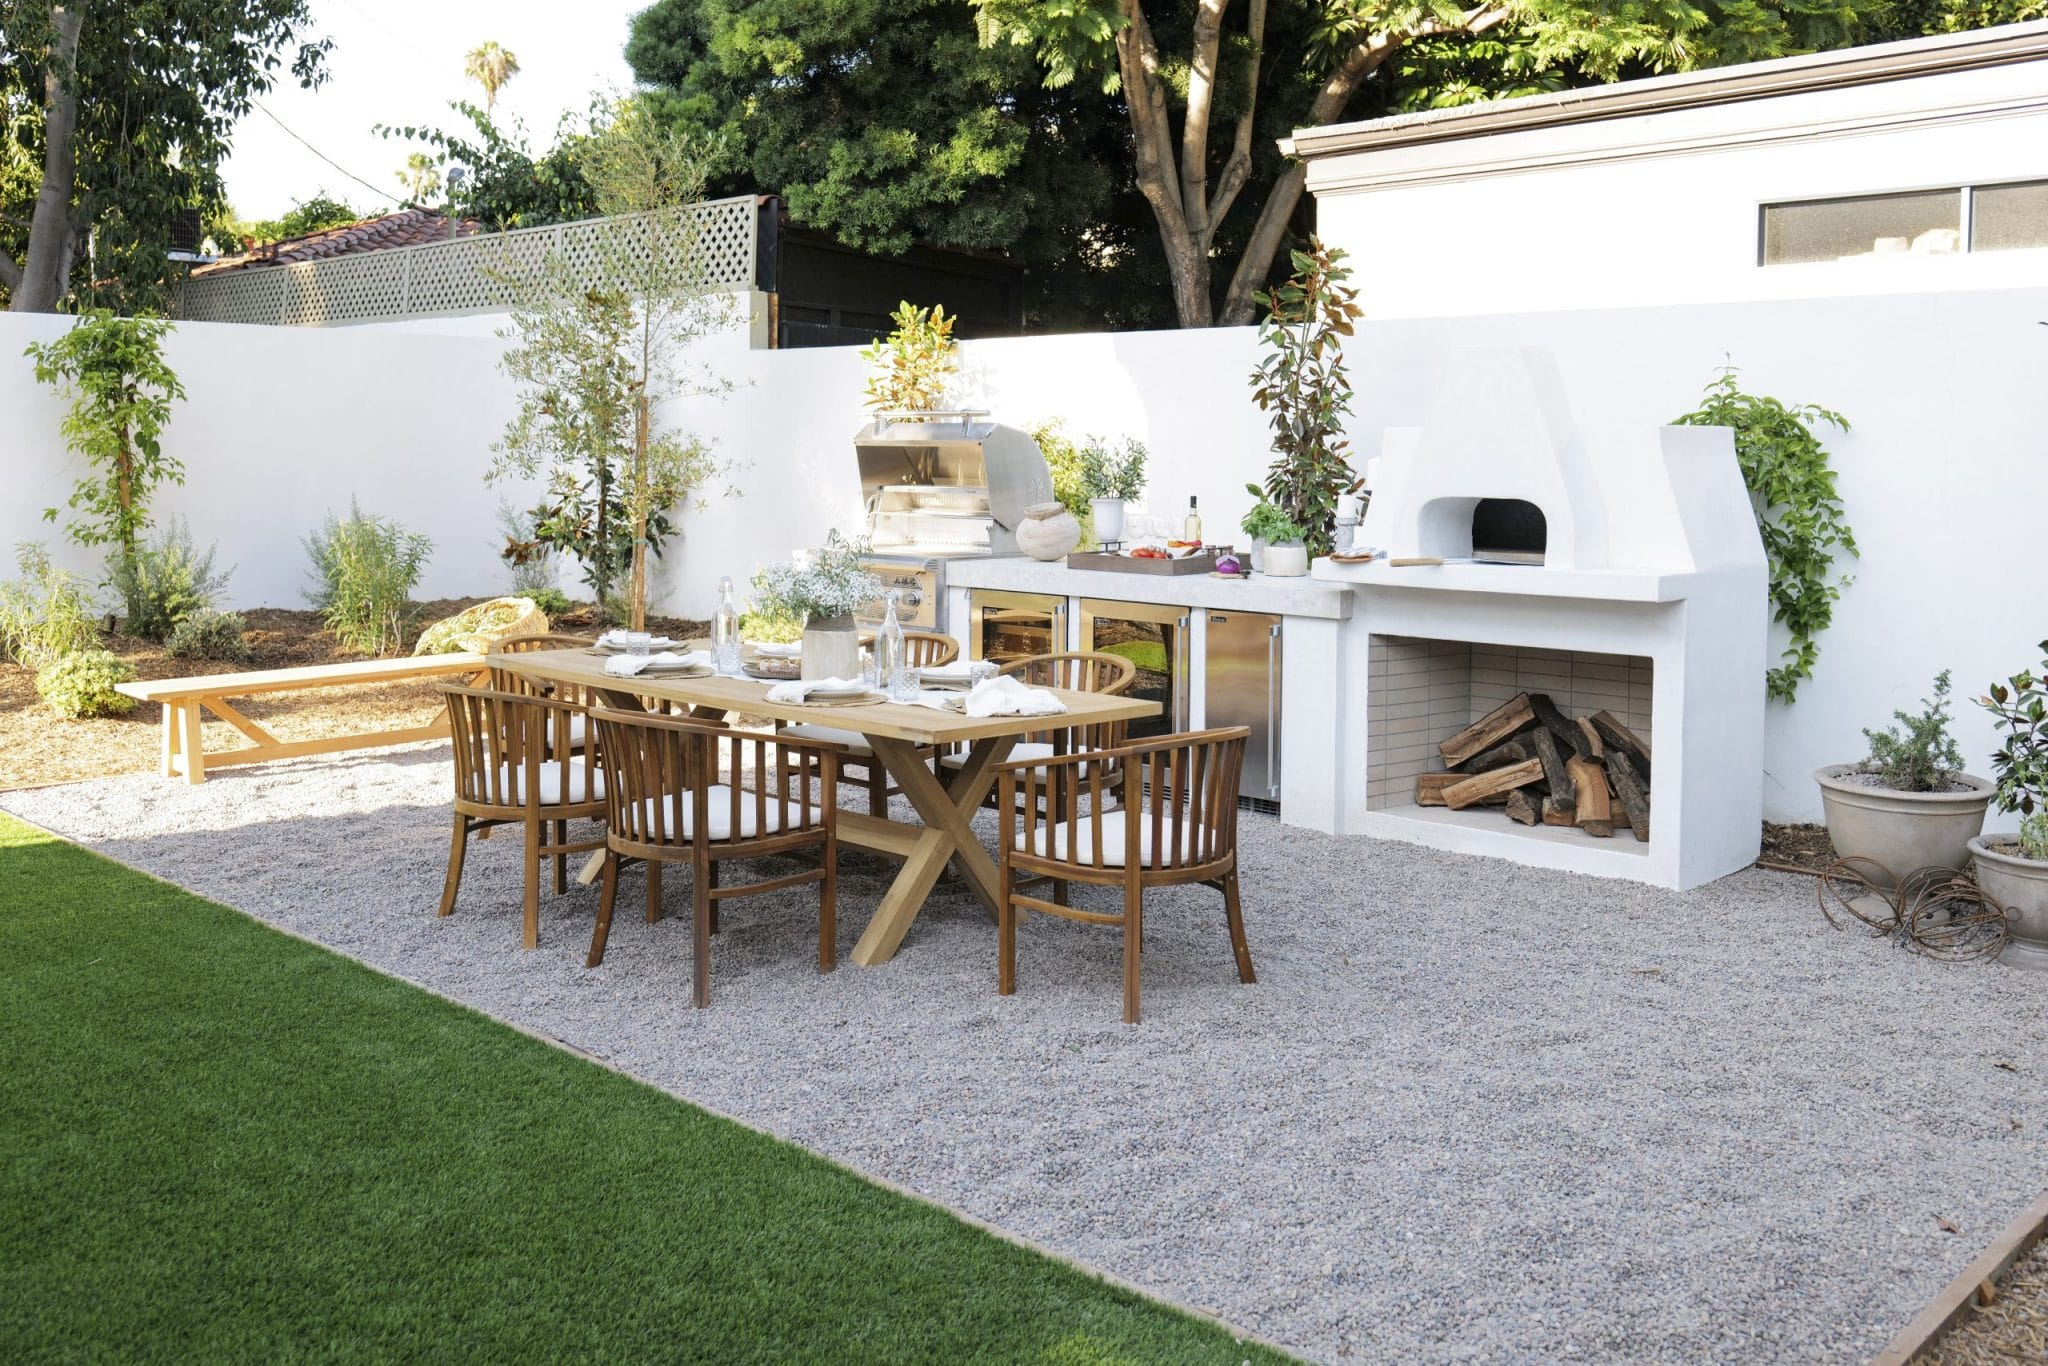 The backyard of the team Drew house after renovations, as seen on Brother vs Brother.